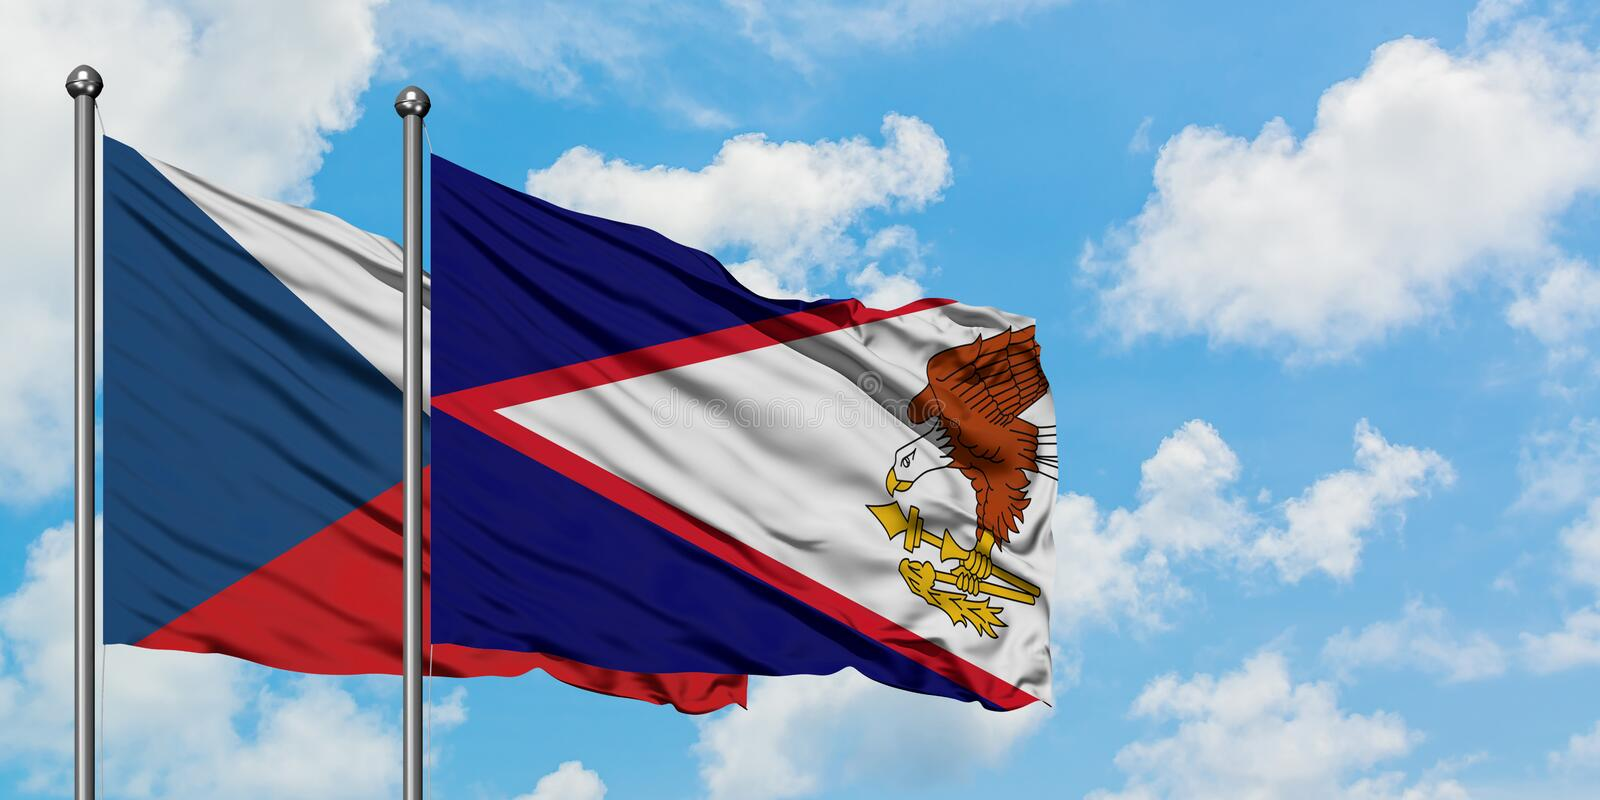 Czech Republic and American Samoa flag waving in the wind against white cloudy blue sky together. Diplomacy concept, international. Relations, consul, diplomat royalty free stock photography